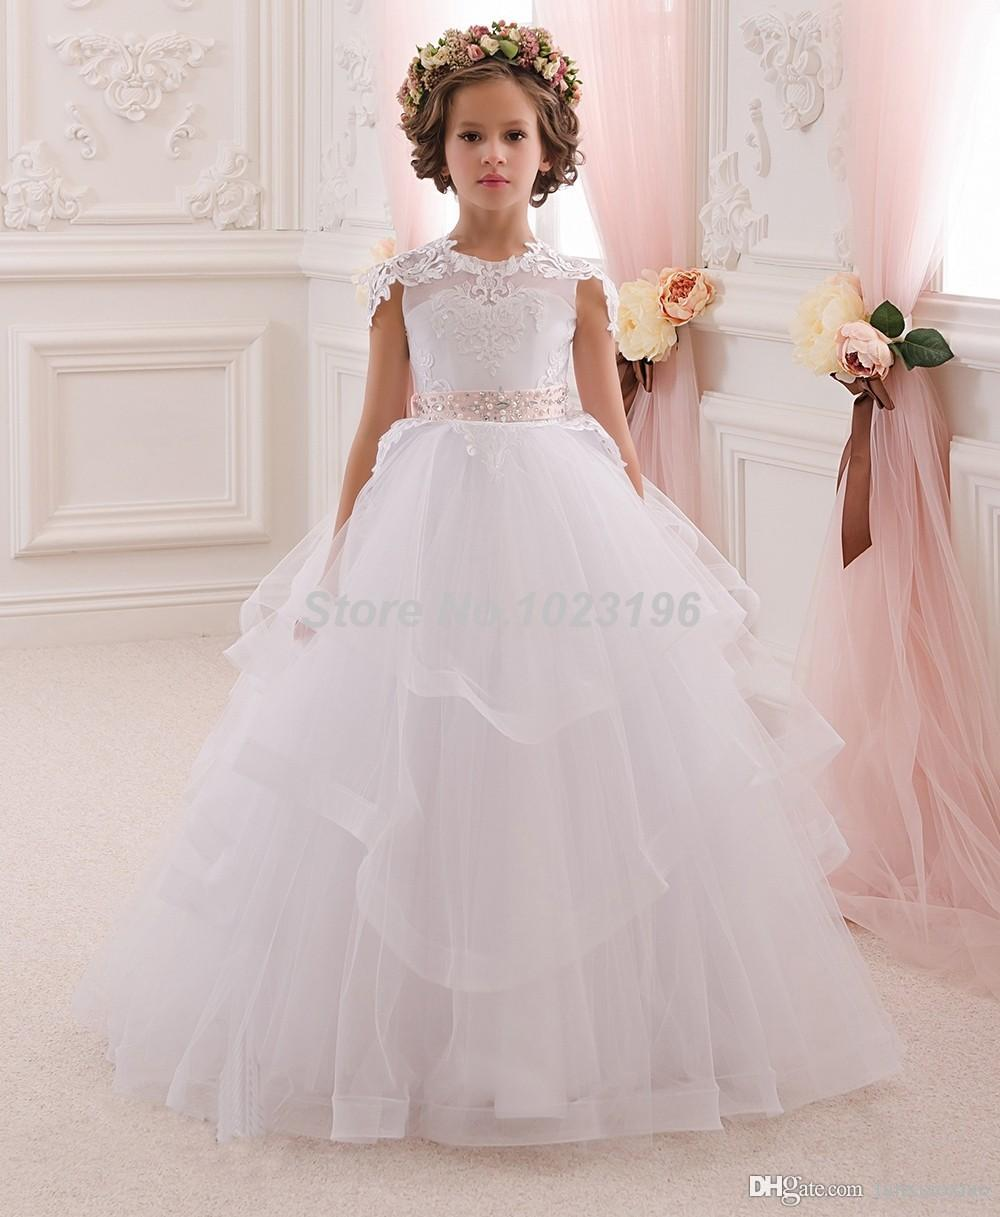 Hot Pretty Princess White Ivory Lace Flower Girl Dresses With Belt